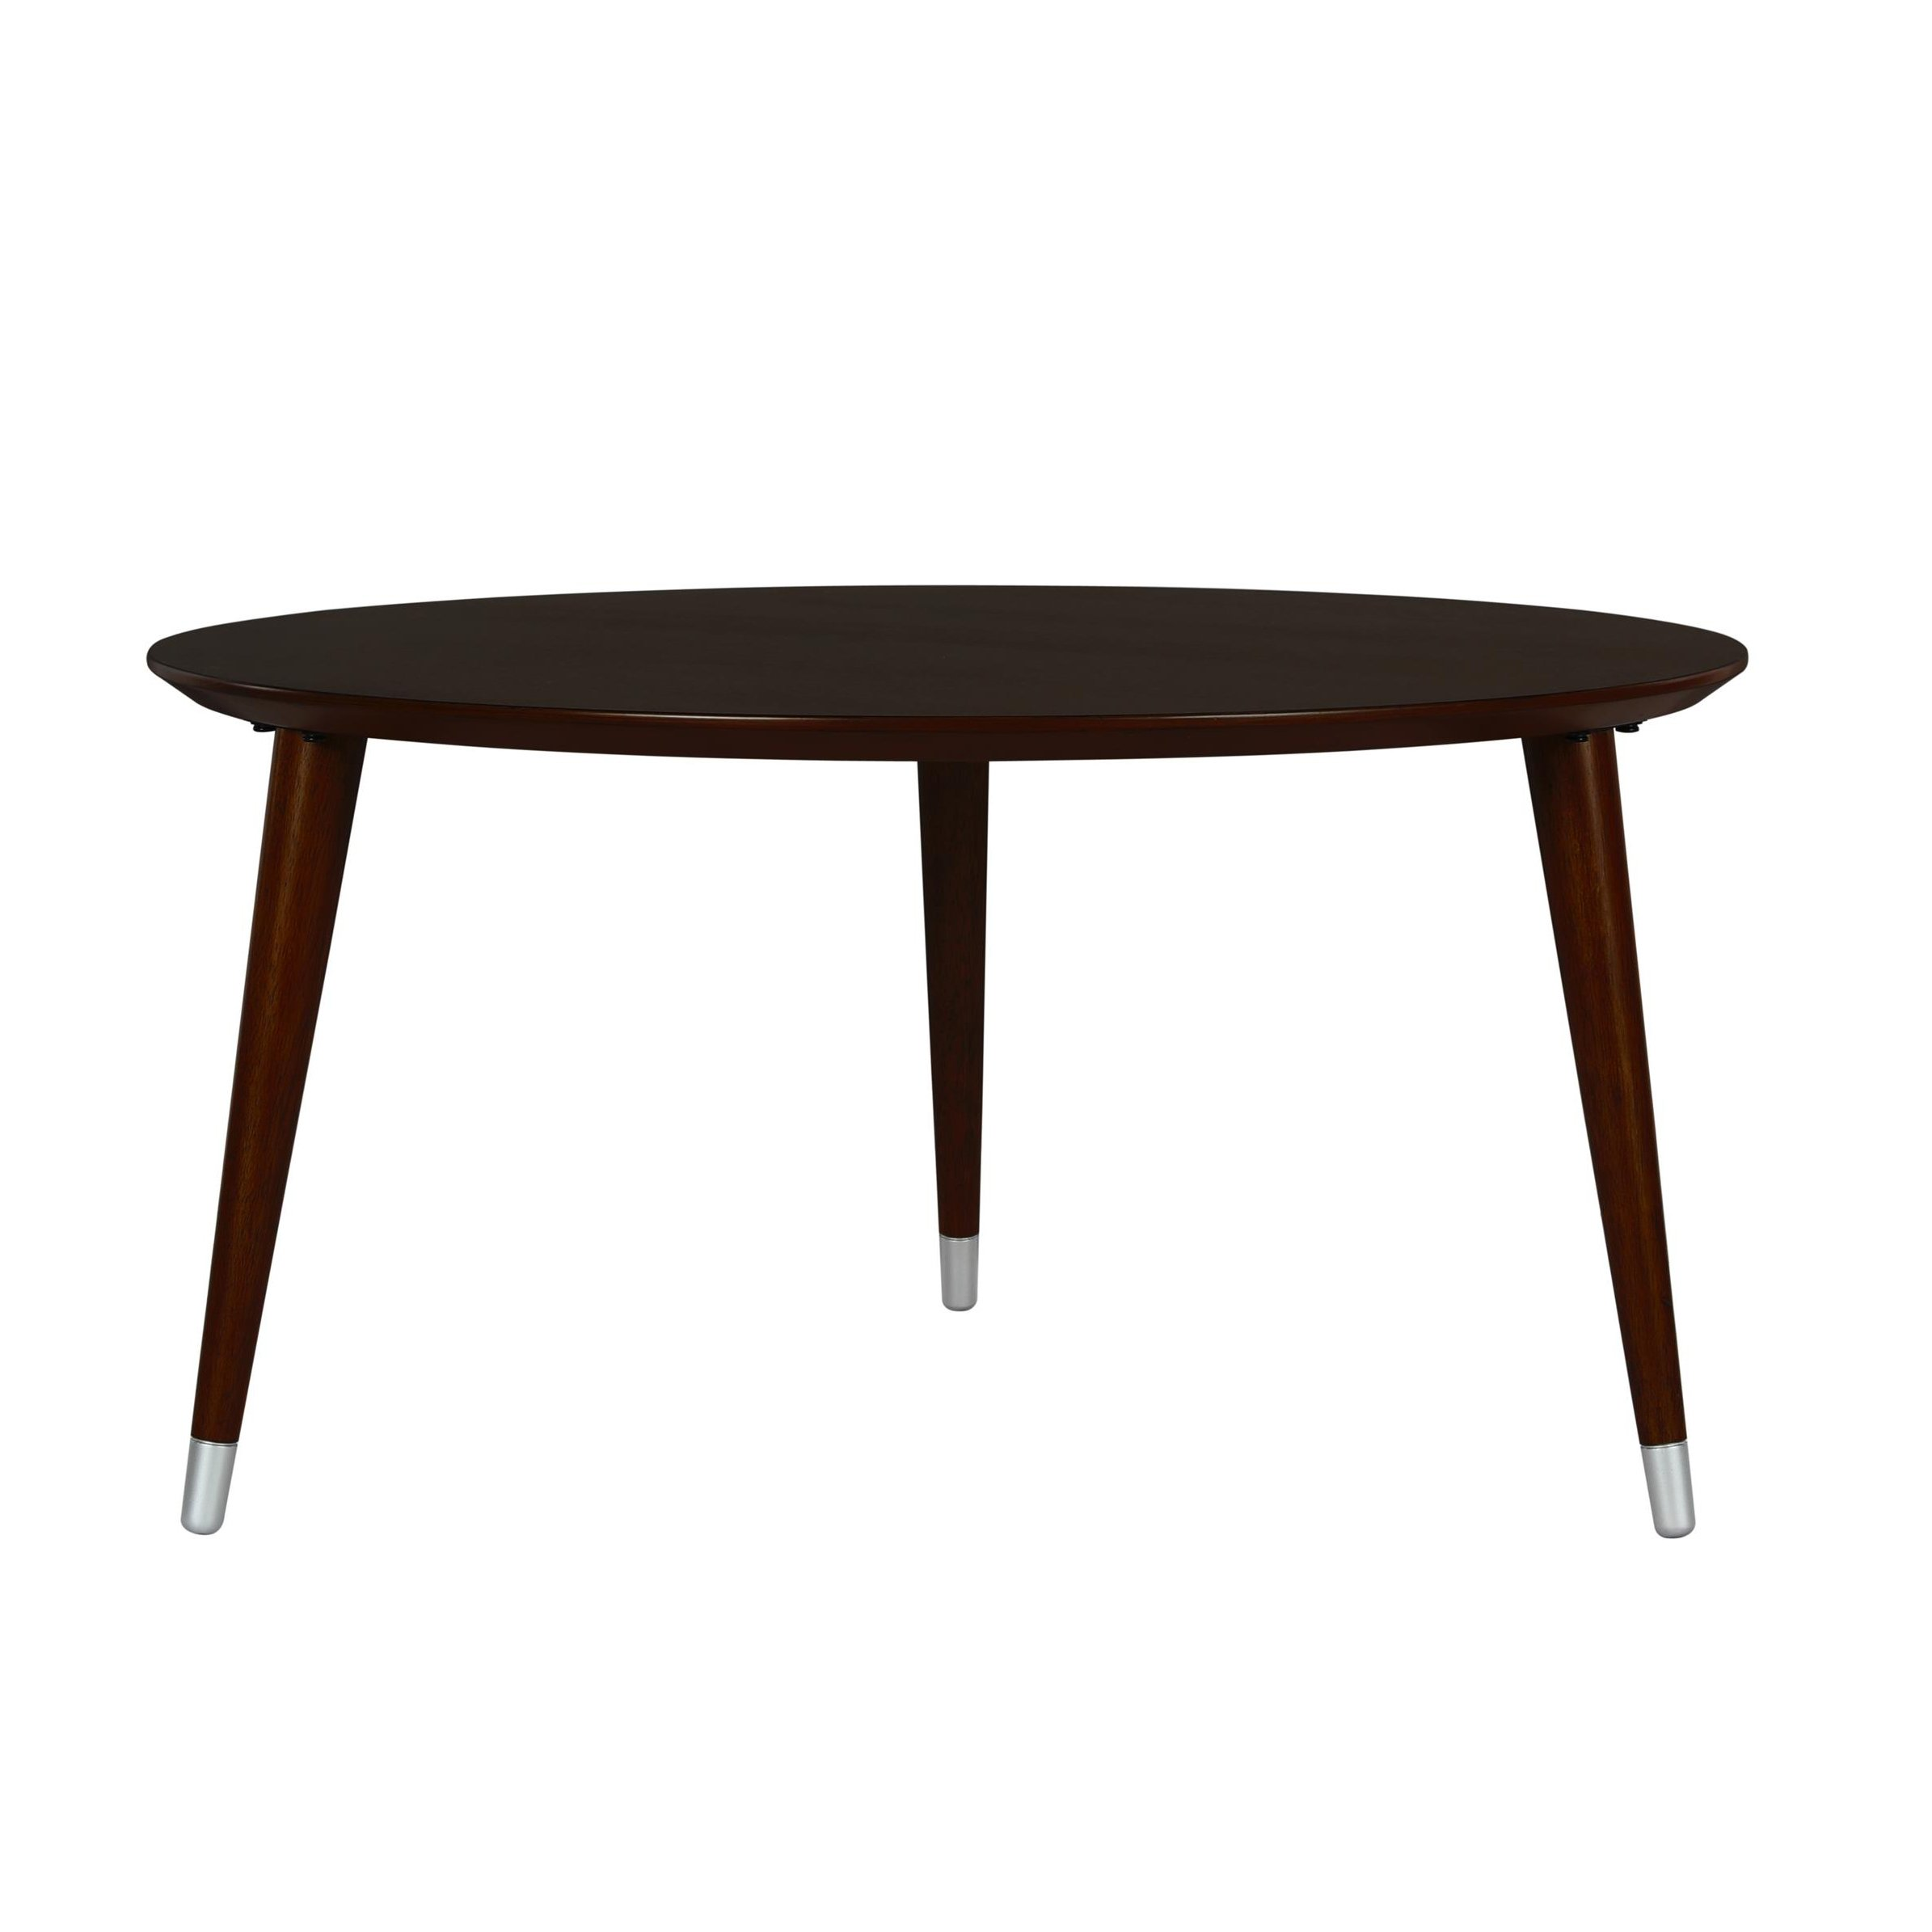 kennington coffee table spindle wood accent chairside small black glass cymbal boom stand pair lamps agate side pottery barn dining with gold legs spring haven kirkland furniture